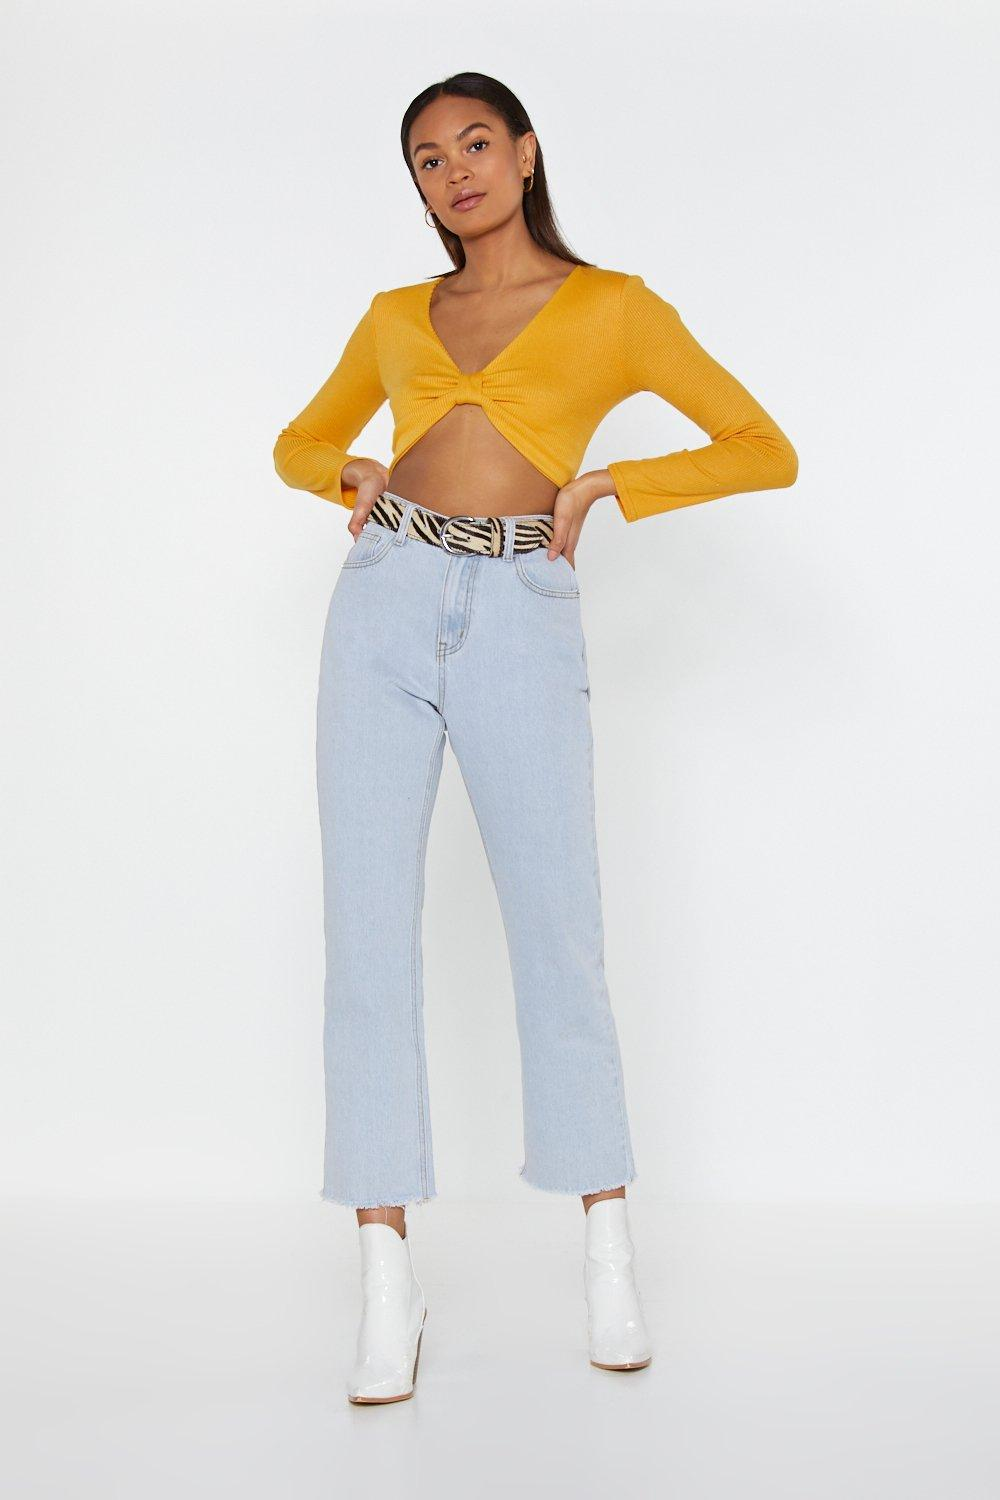 a16128fdf60 What's Knot to Love Ribbed Crop Top | Shop Clothes at Nasty Gal!